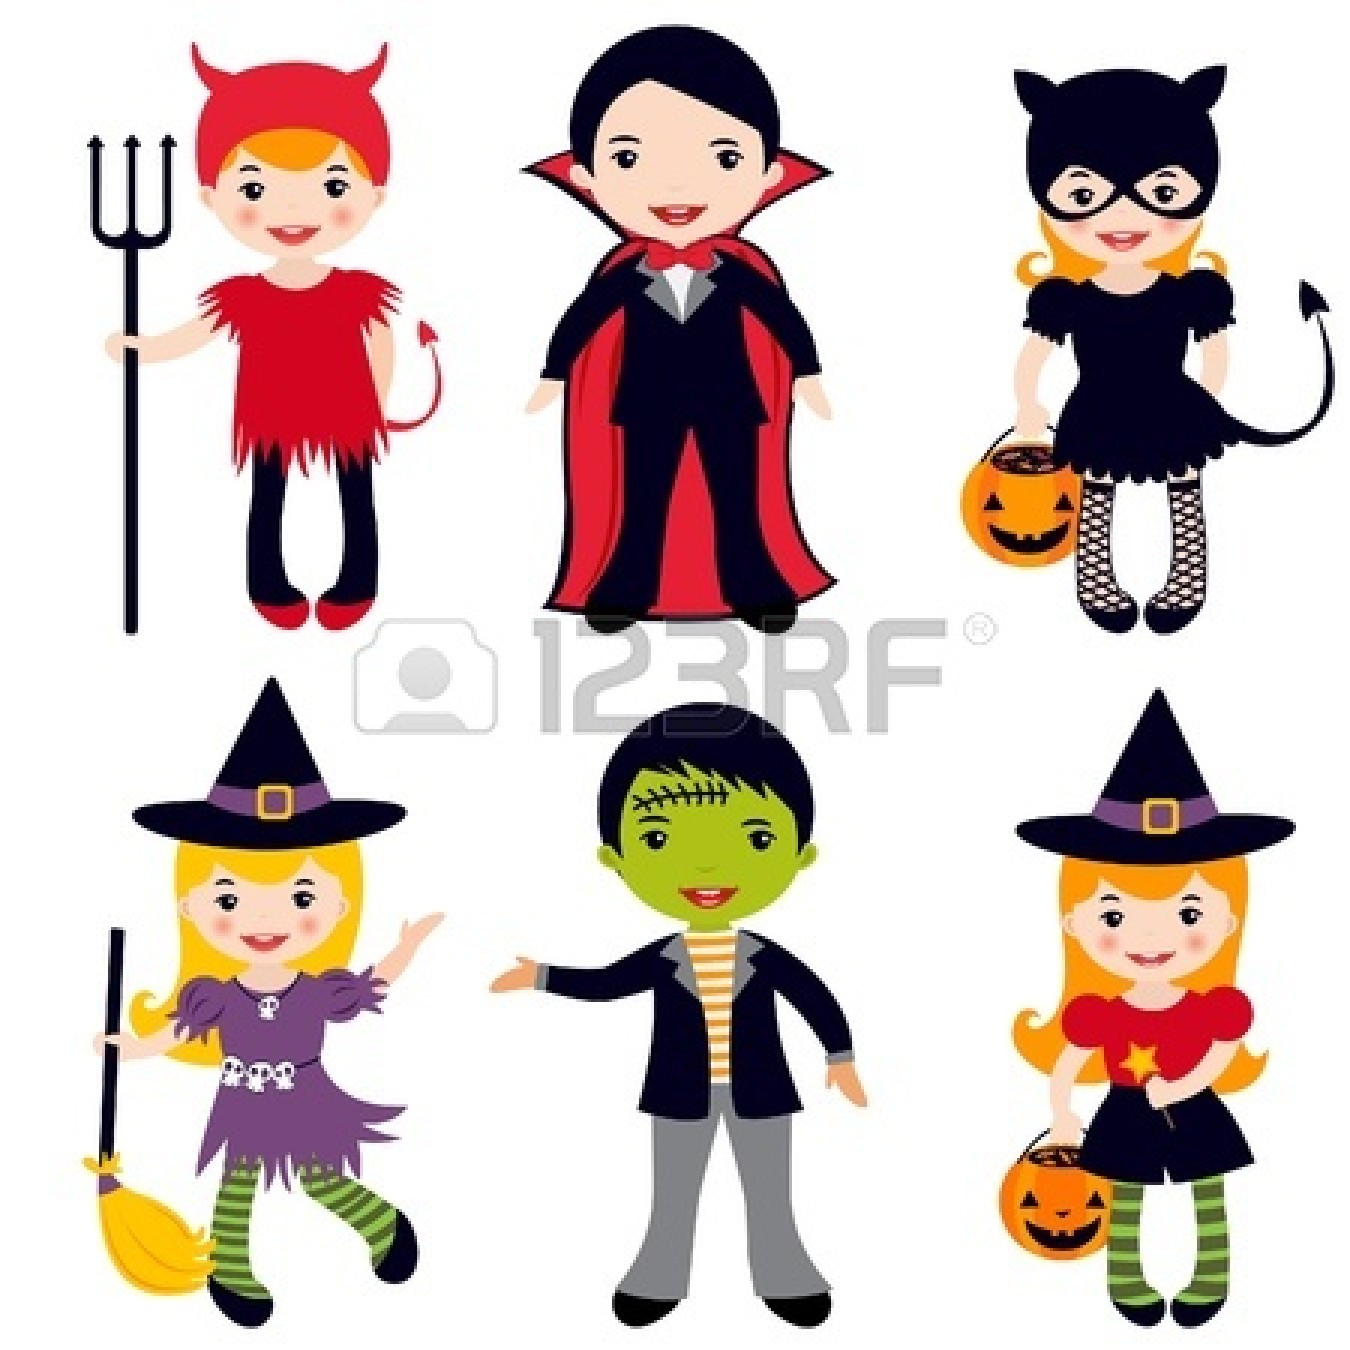 Kids character costumes clipart svg black and white Kids character costumes clipart - ClipartFest svg black and white